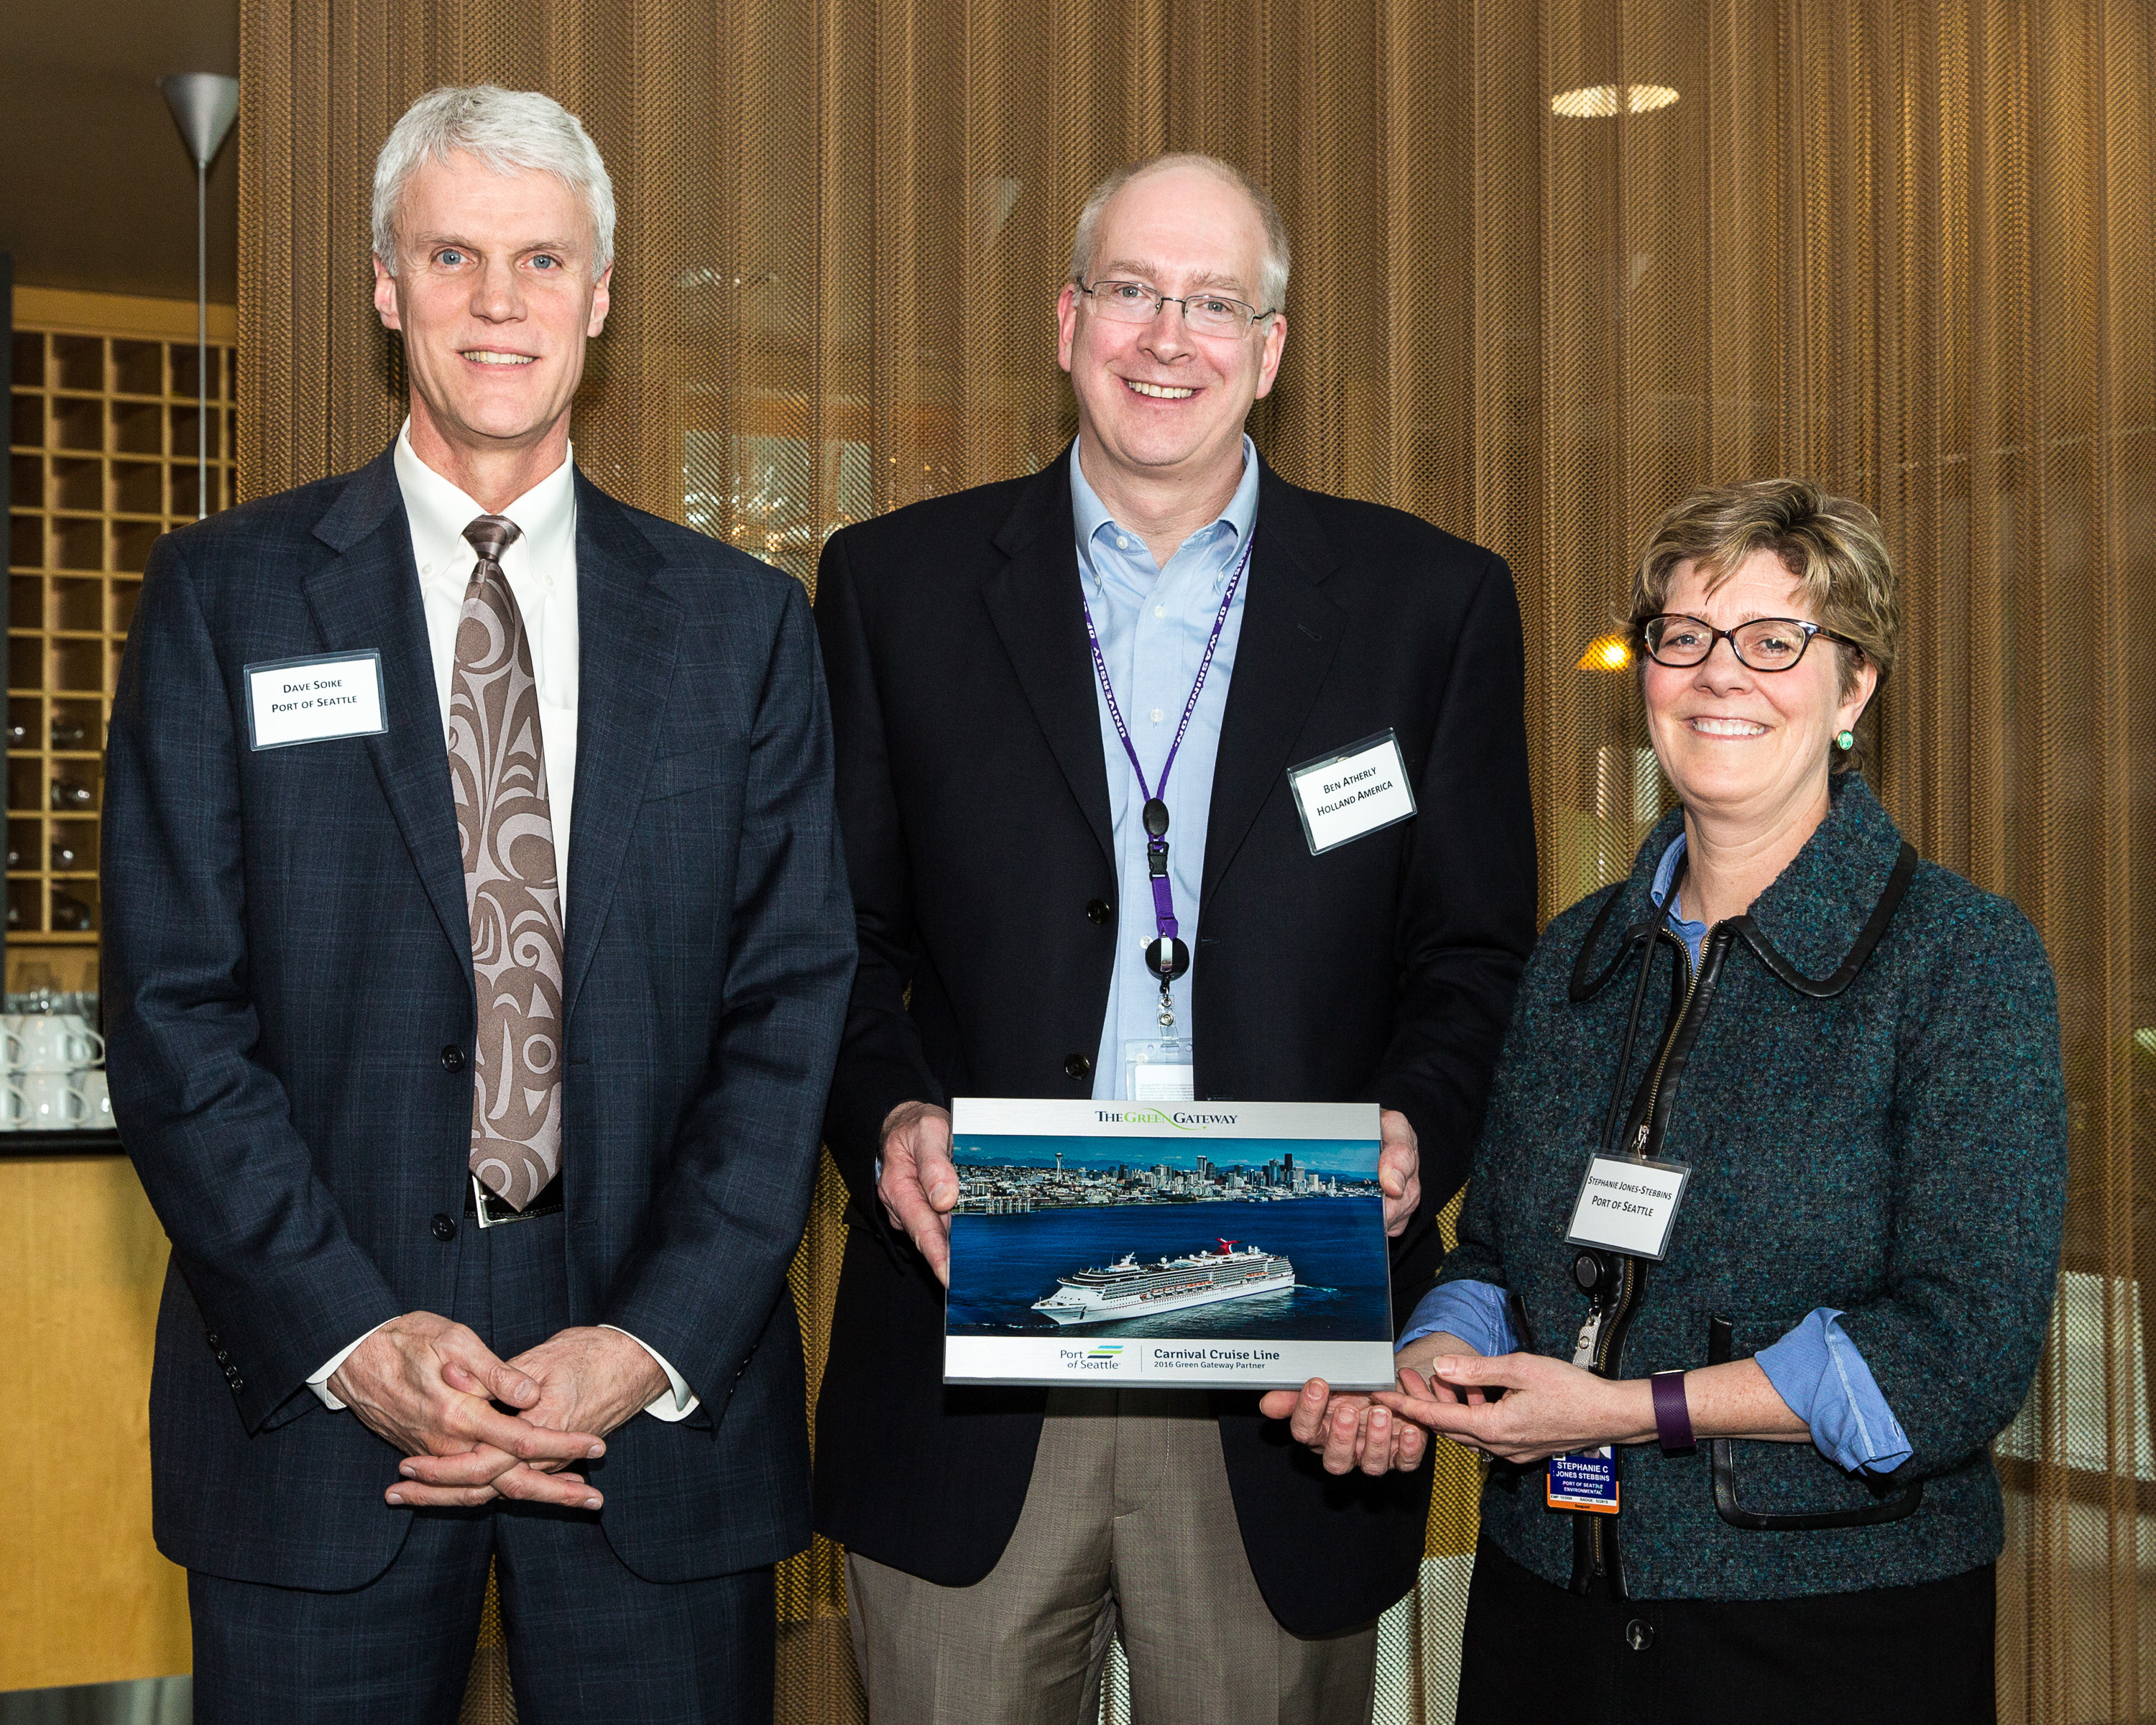 Carnival Cruise Line Receives Second Consecutive Program Innovator Award and Green Gateway Partners Award from Port of Seattle